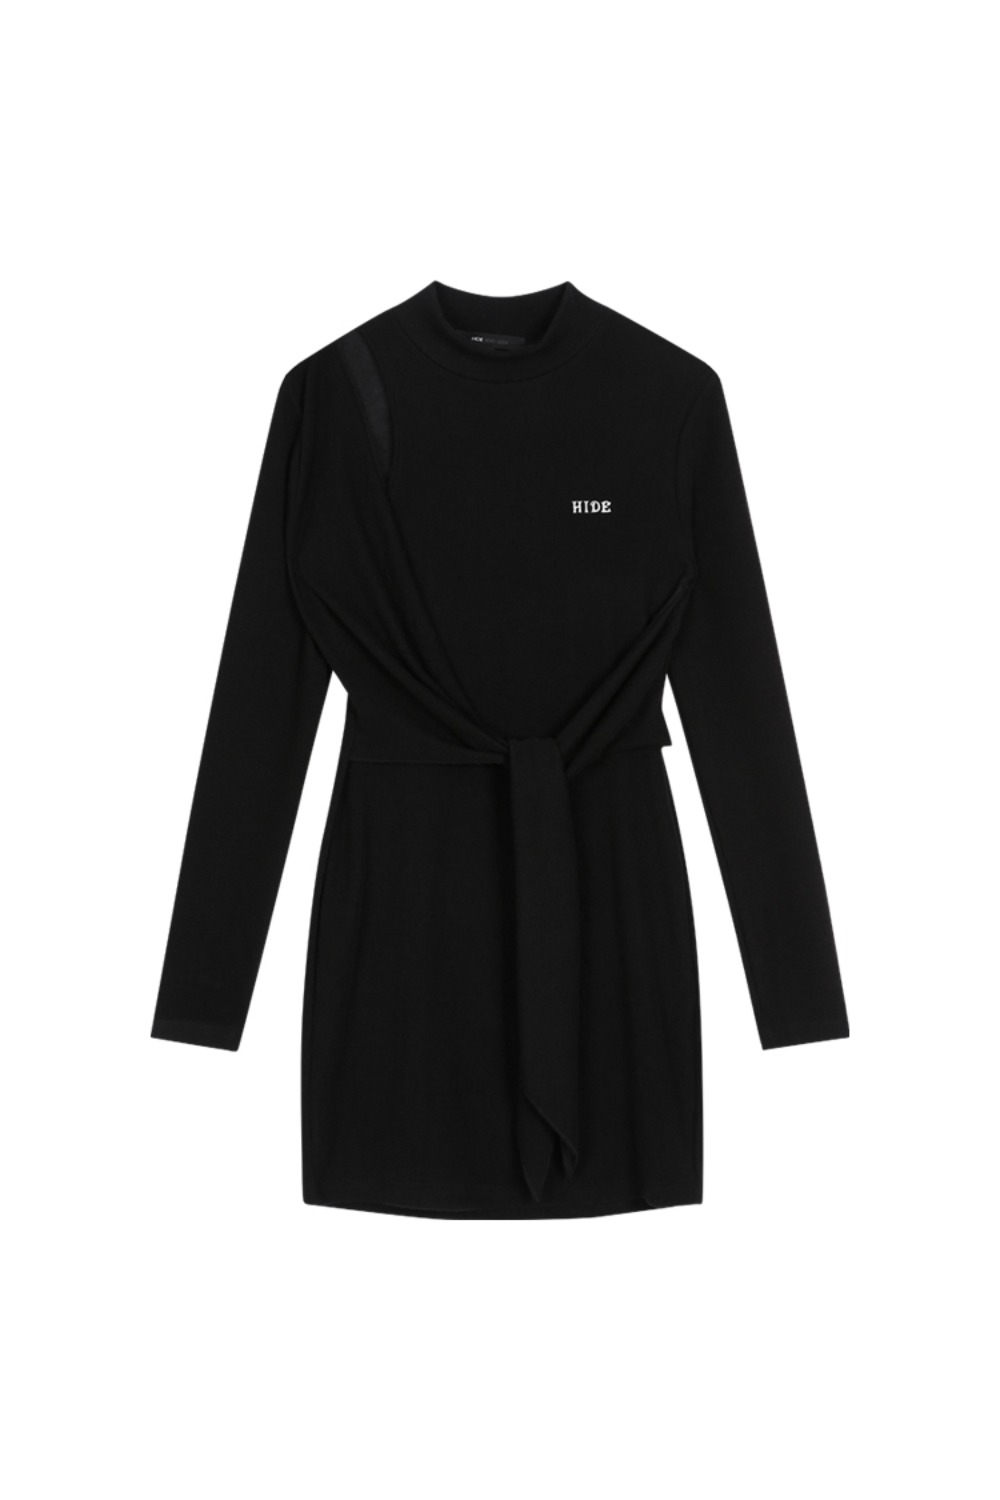 HIDE Cutting Lap Dress BLACK